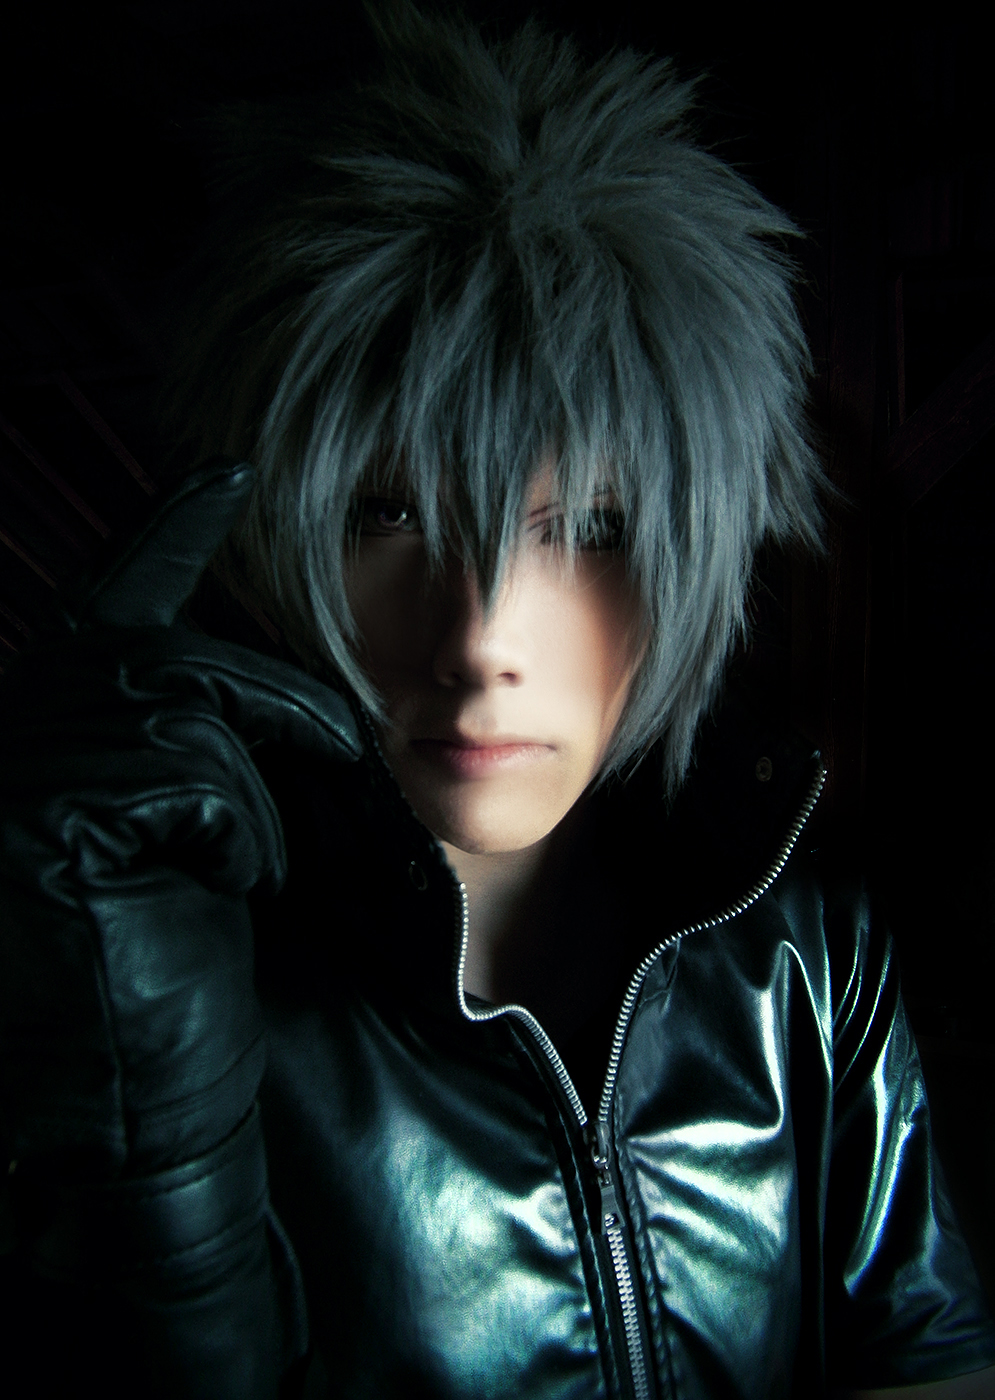 Noctis close-up by Akitozz6